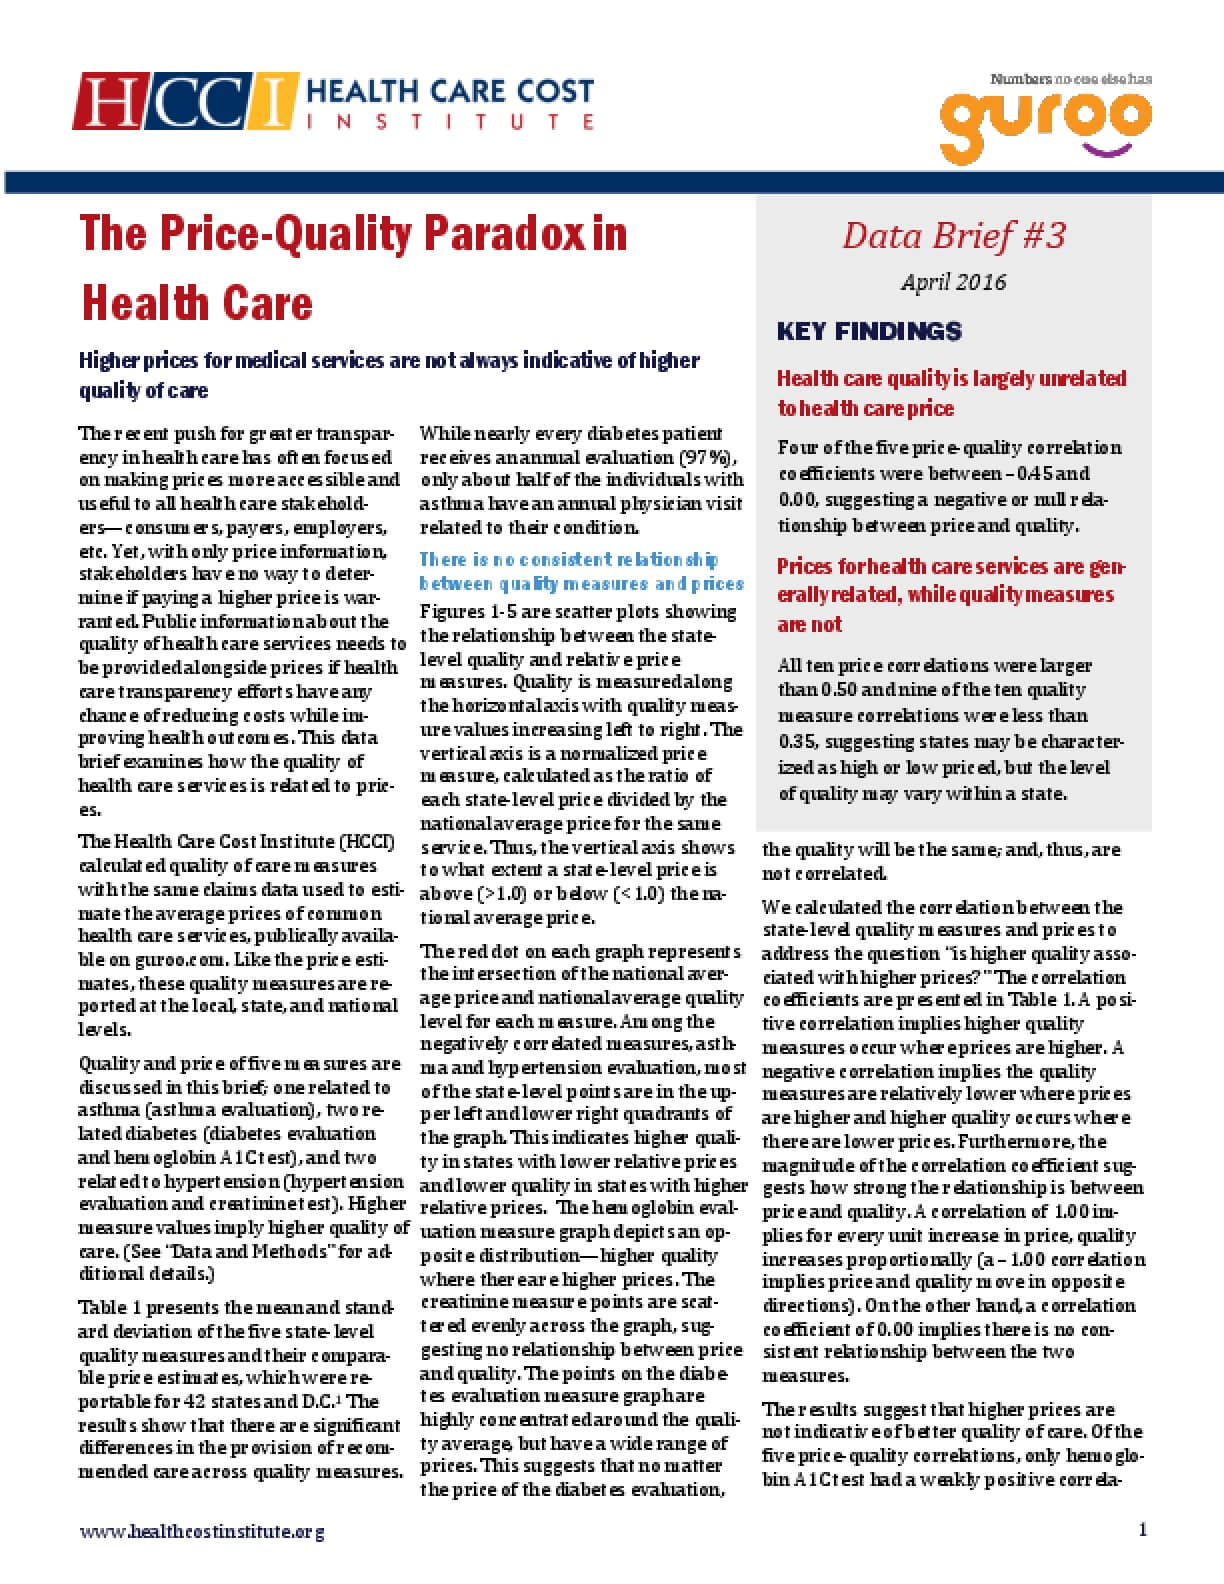 The Price-Quality Paradox in Healthcare